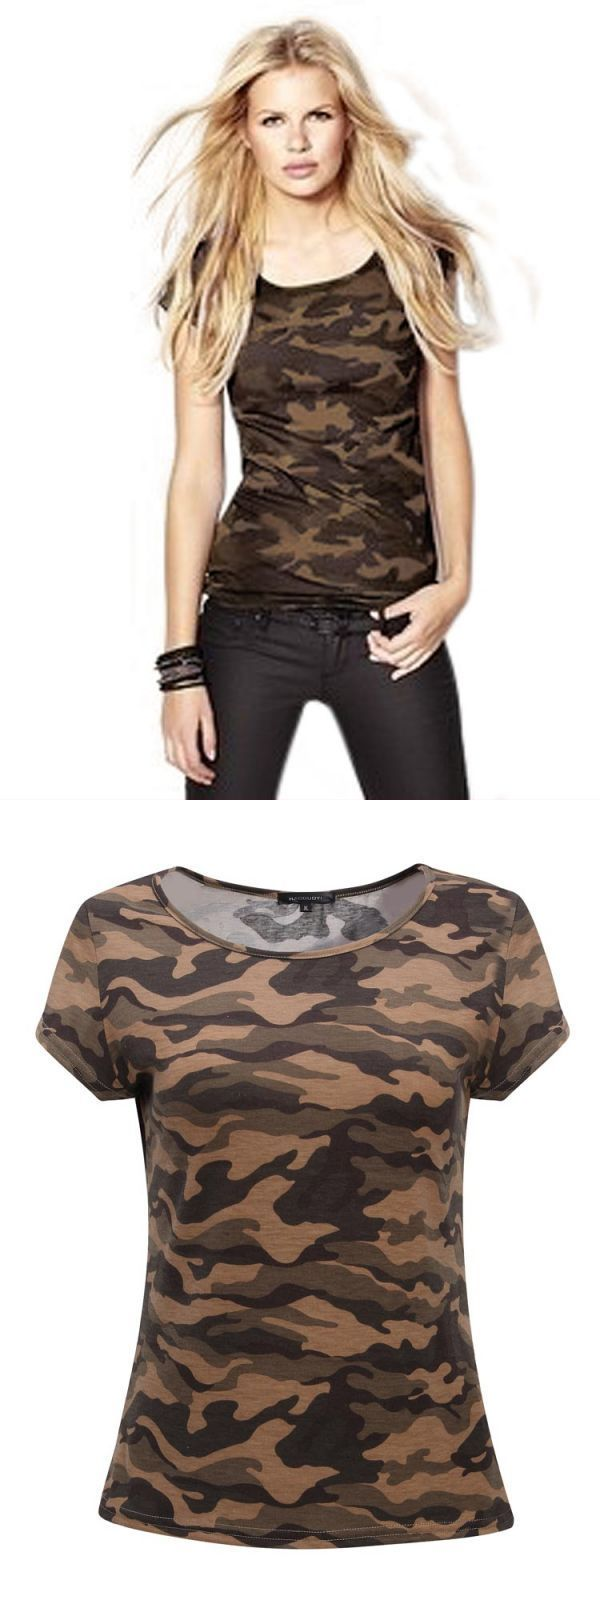 Camouflage color lycra tanks short sleeve military style t-shirt superman t shirt girl online #eddie #bauer #womens #t #shirts #gap #womens #t #shirts #t #shirt #maker #girl #womens #v #neck #cotton #t #shirts